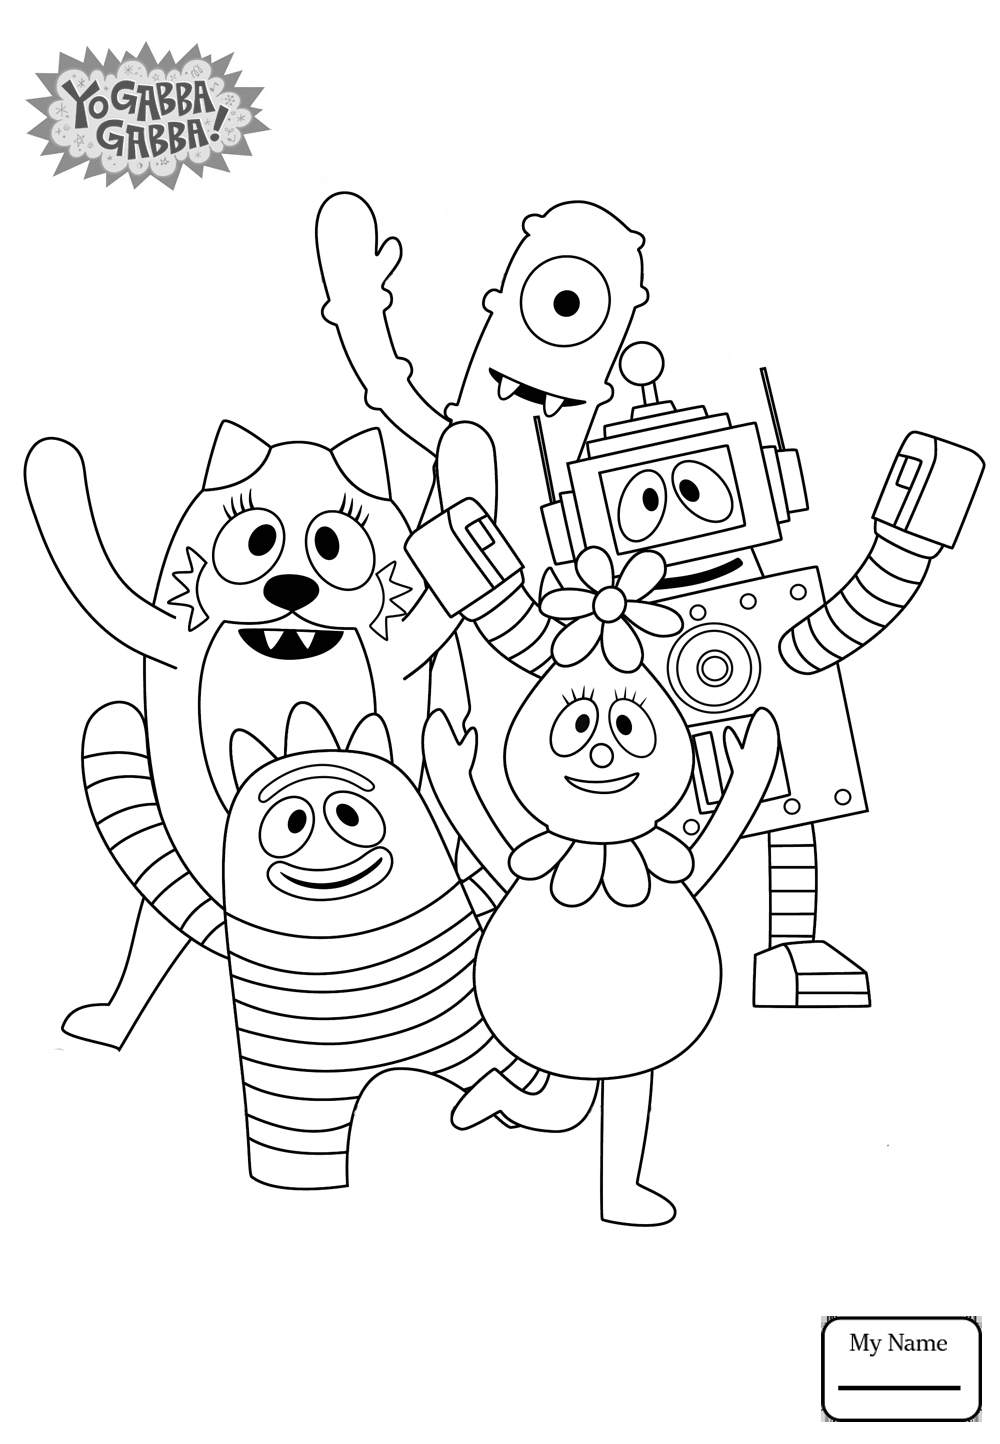 masterpiece coloring pages masterpiece coloring pages at getcoloringscom free masterpiece coloring pages